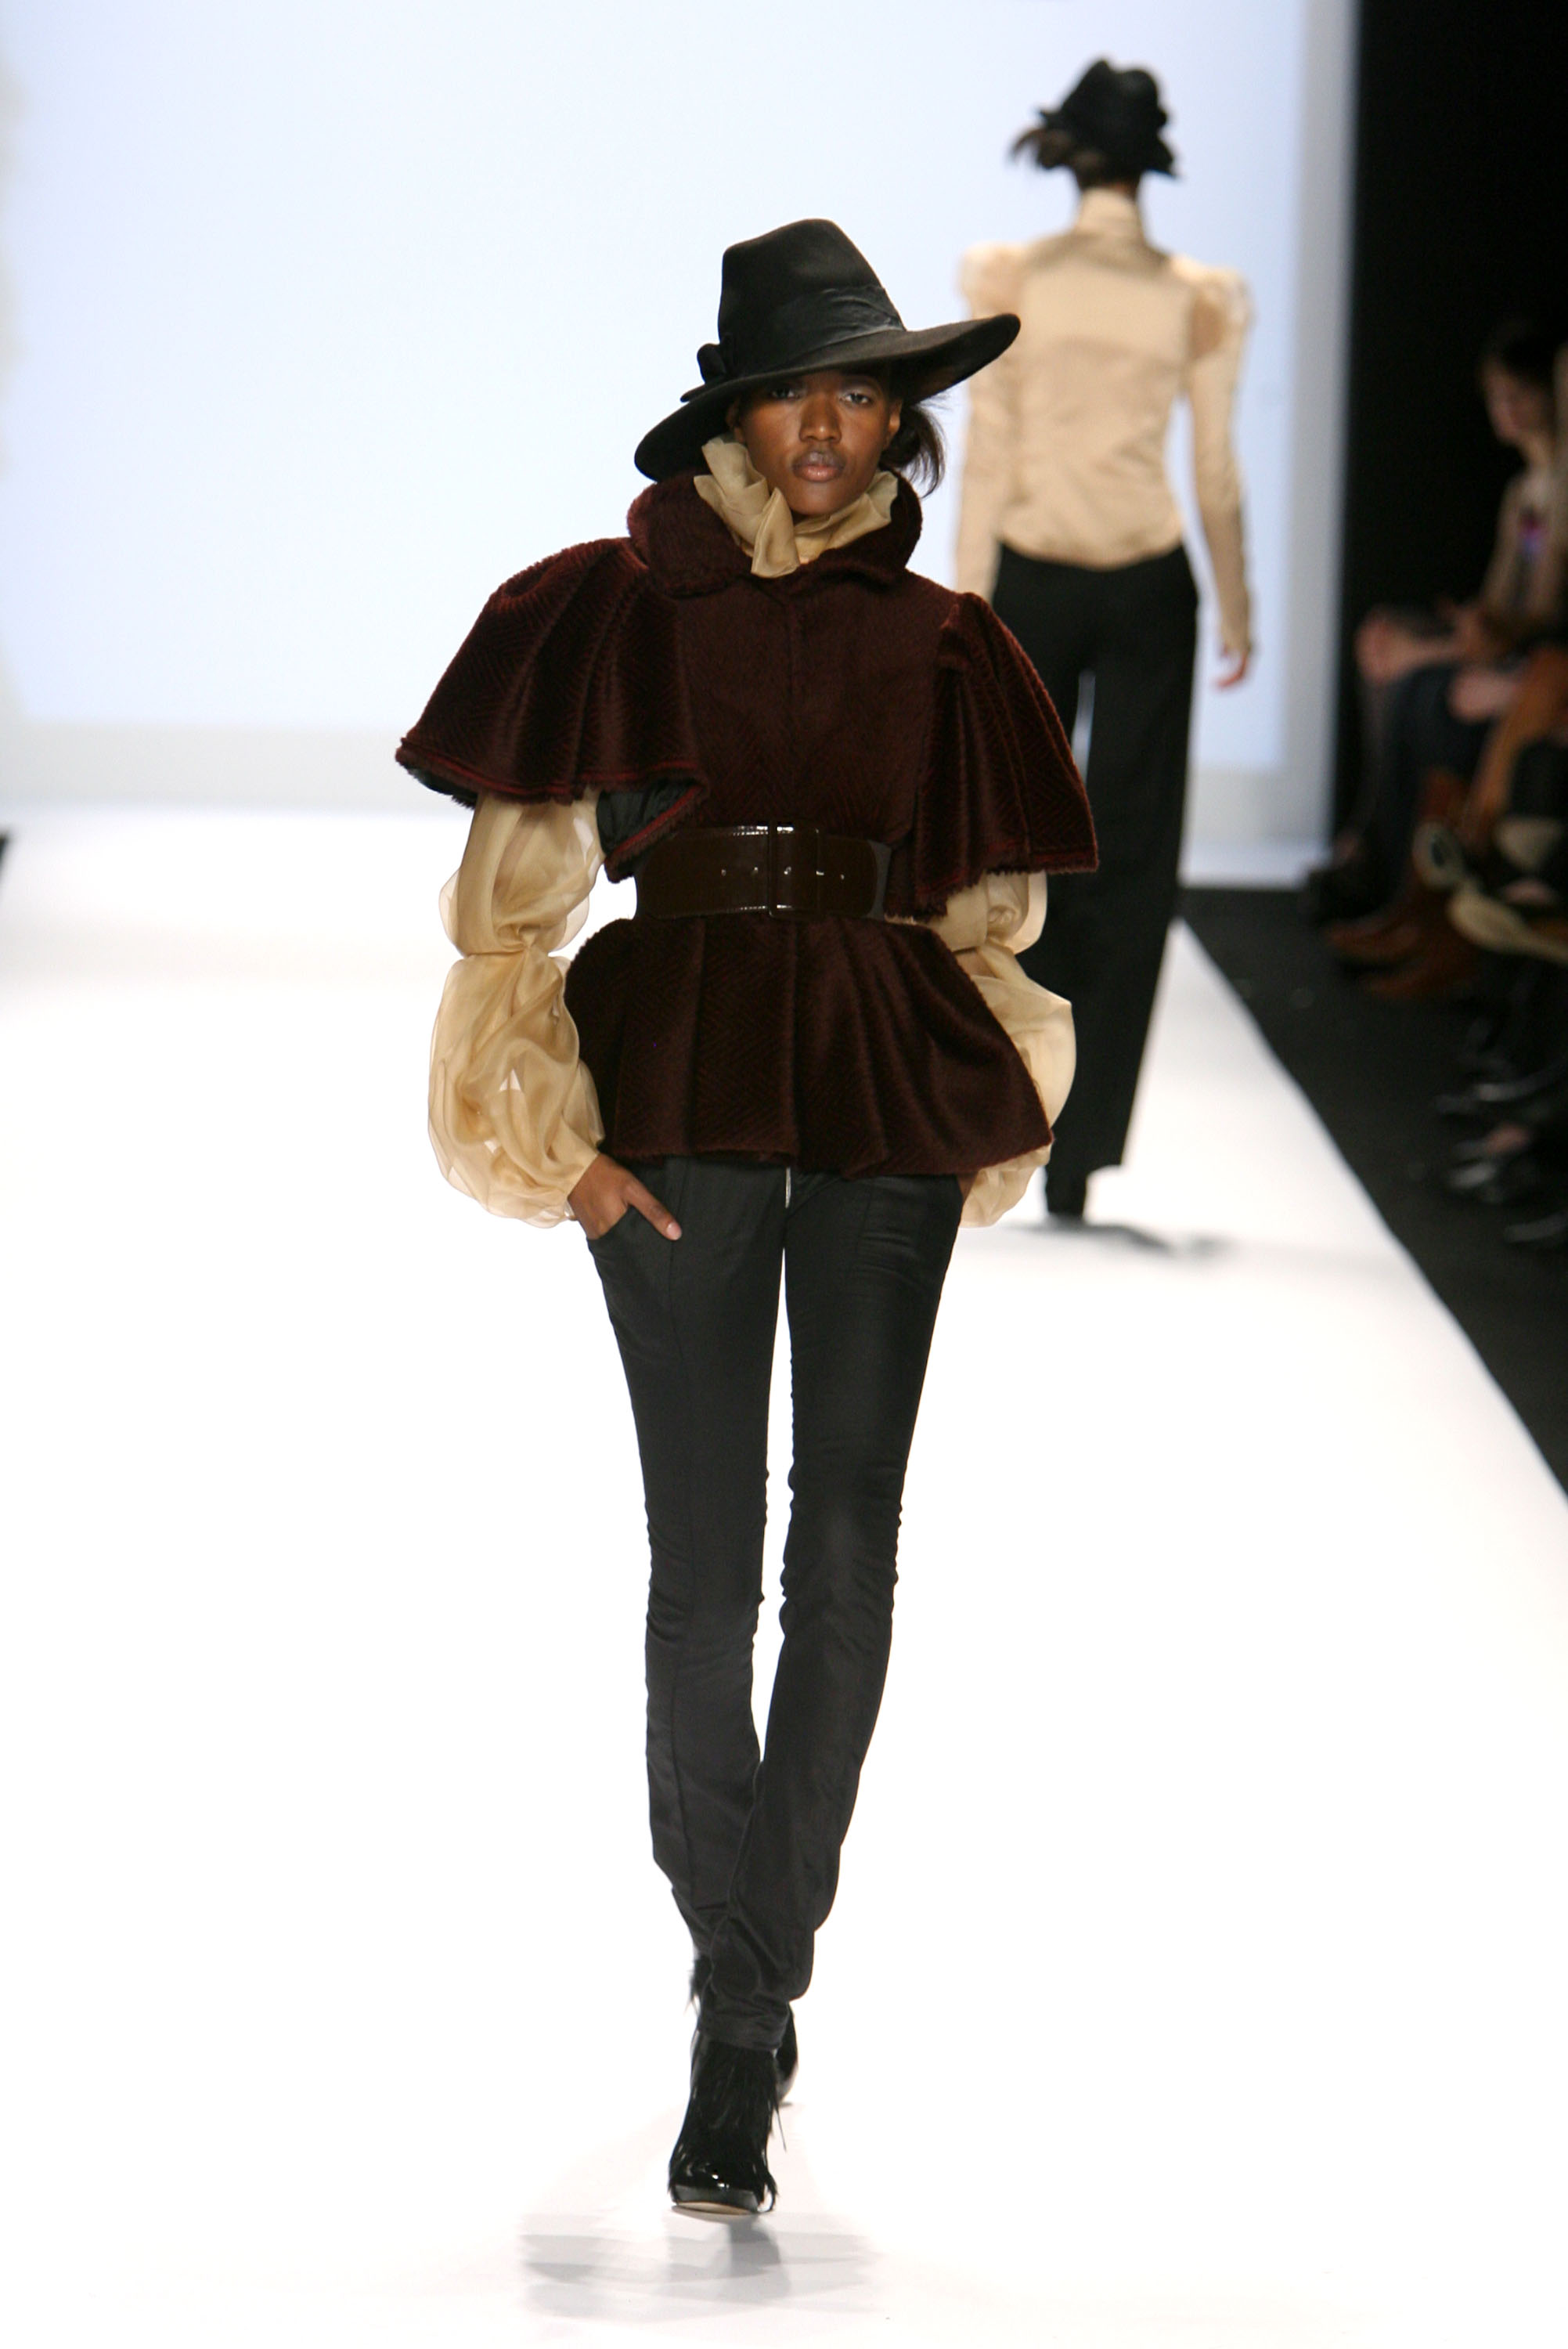 New York Fashion Week, Fall 2008: The Project Runway Finale Show (!)